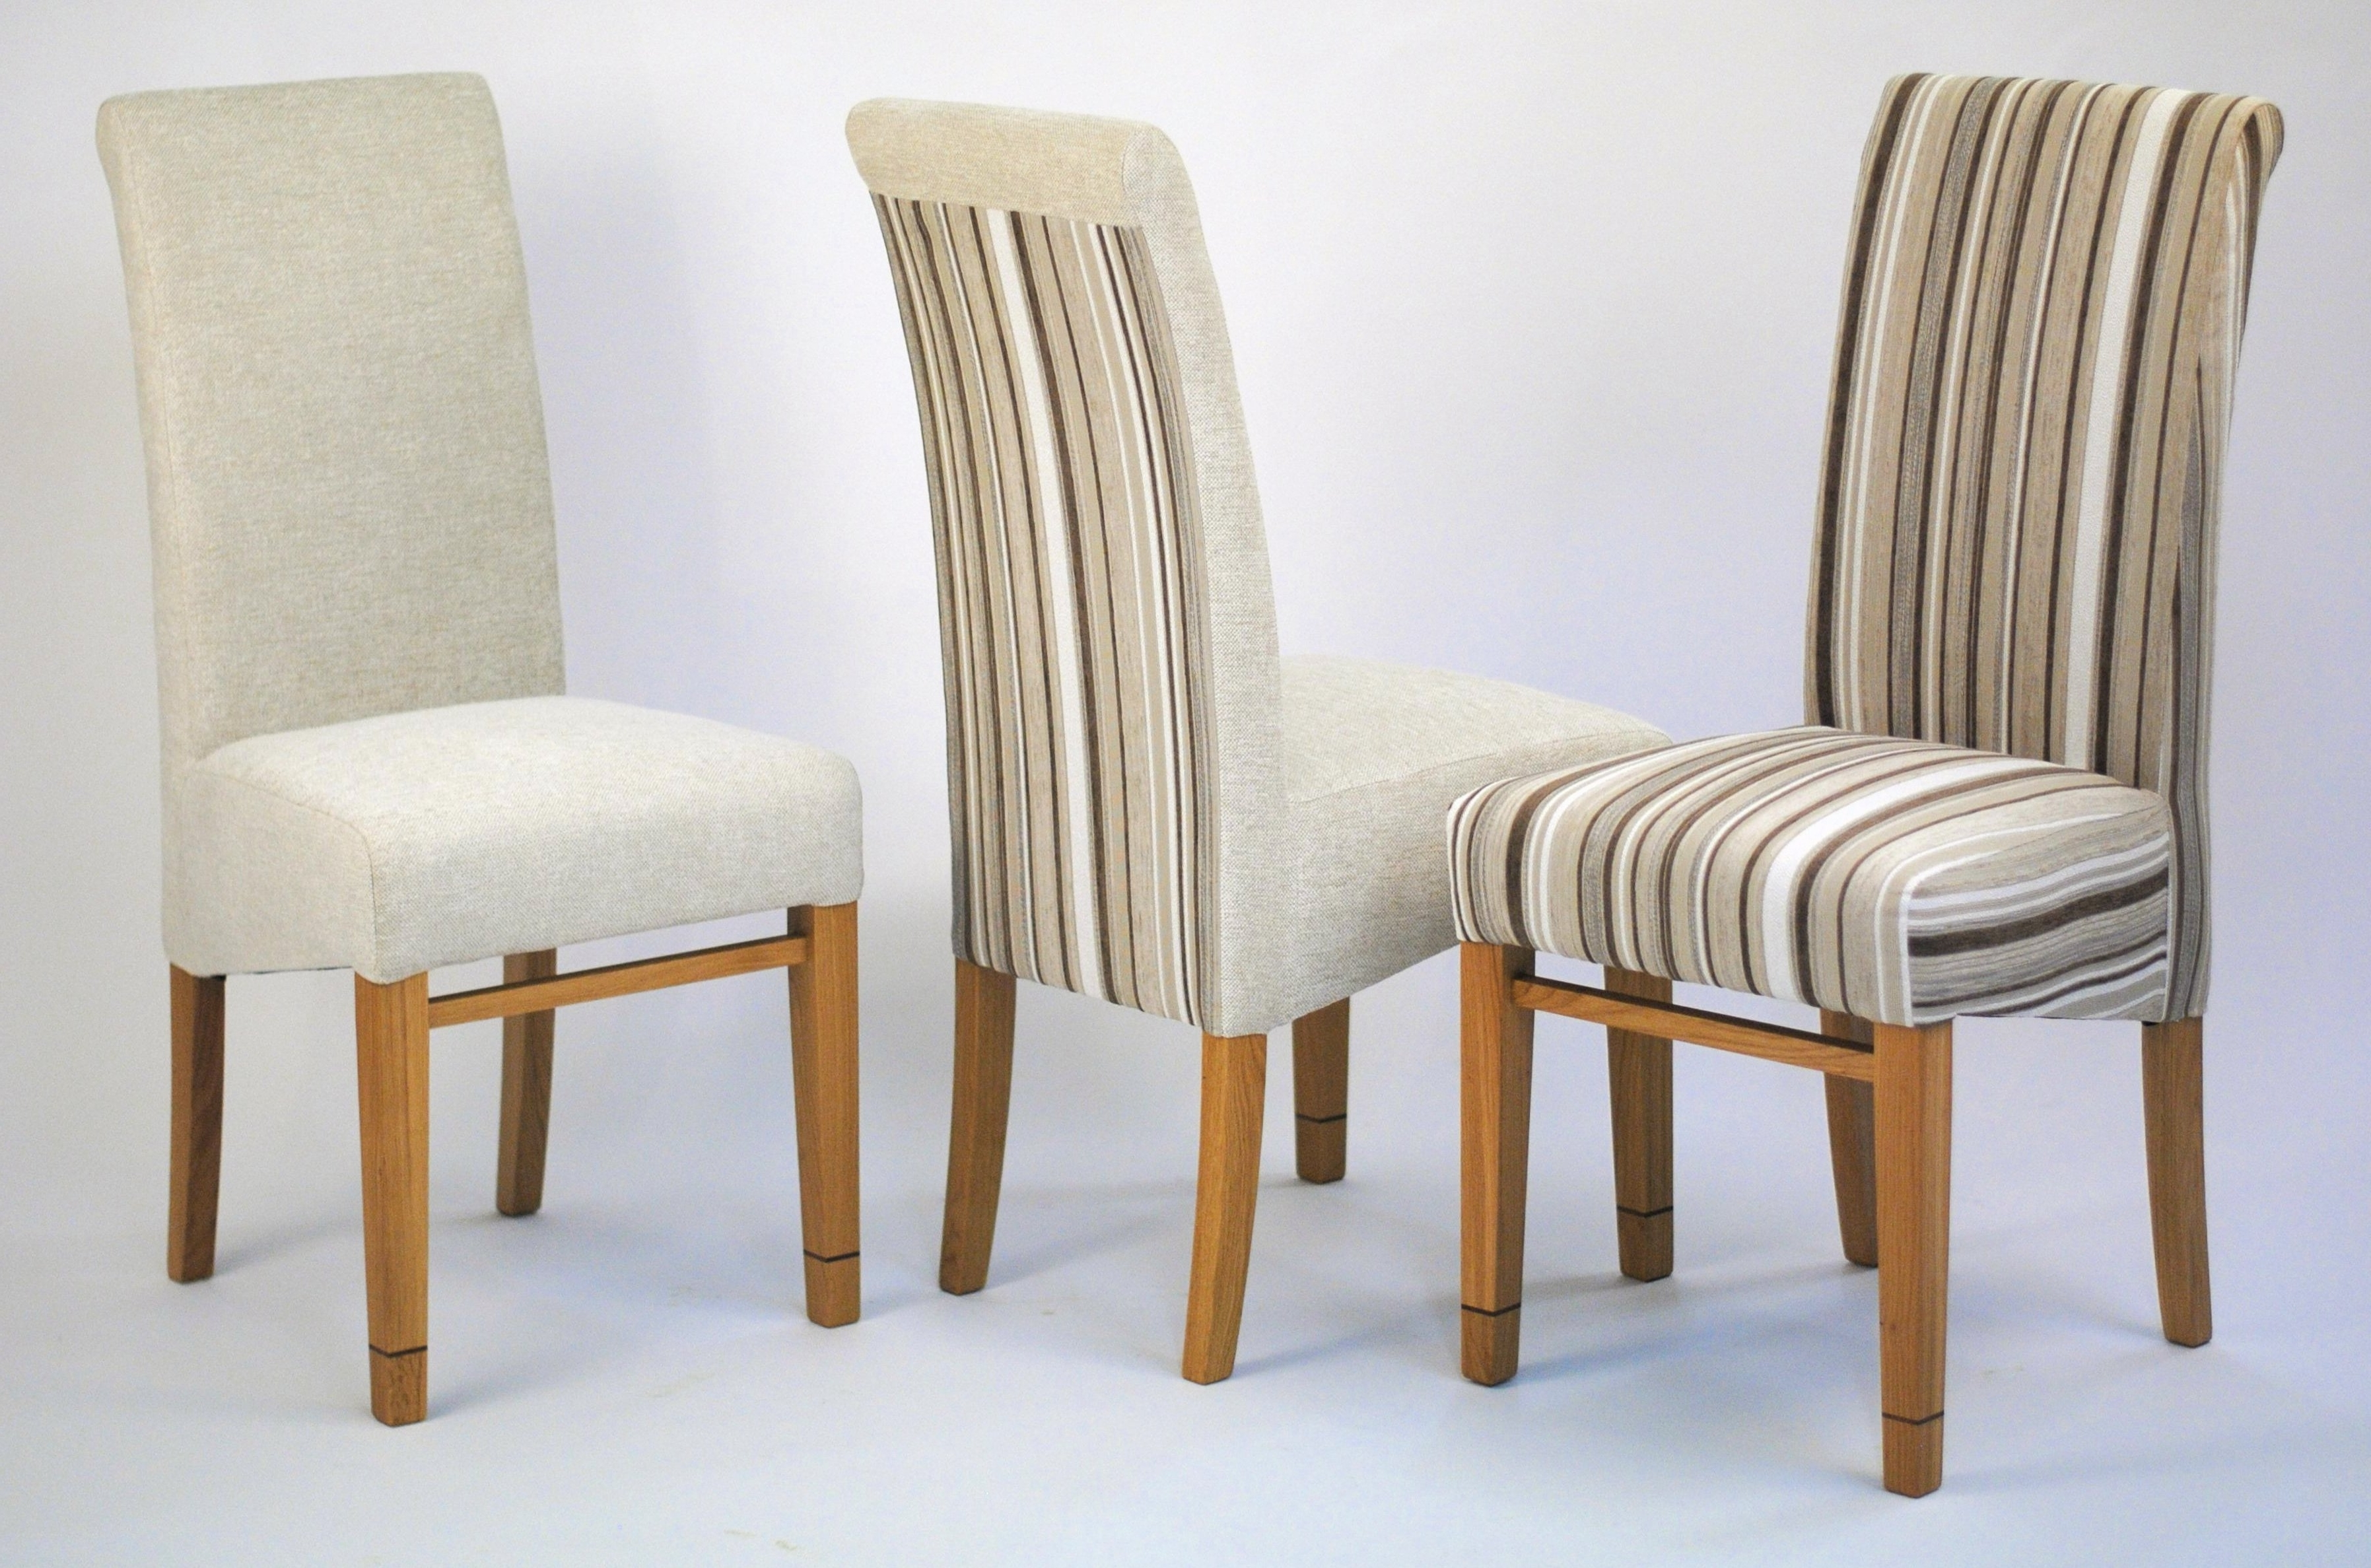 Upholstered Dining Chair - Tanner Furniture Designs with Widely used Cream Dining Tables And Chairs